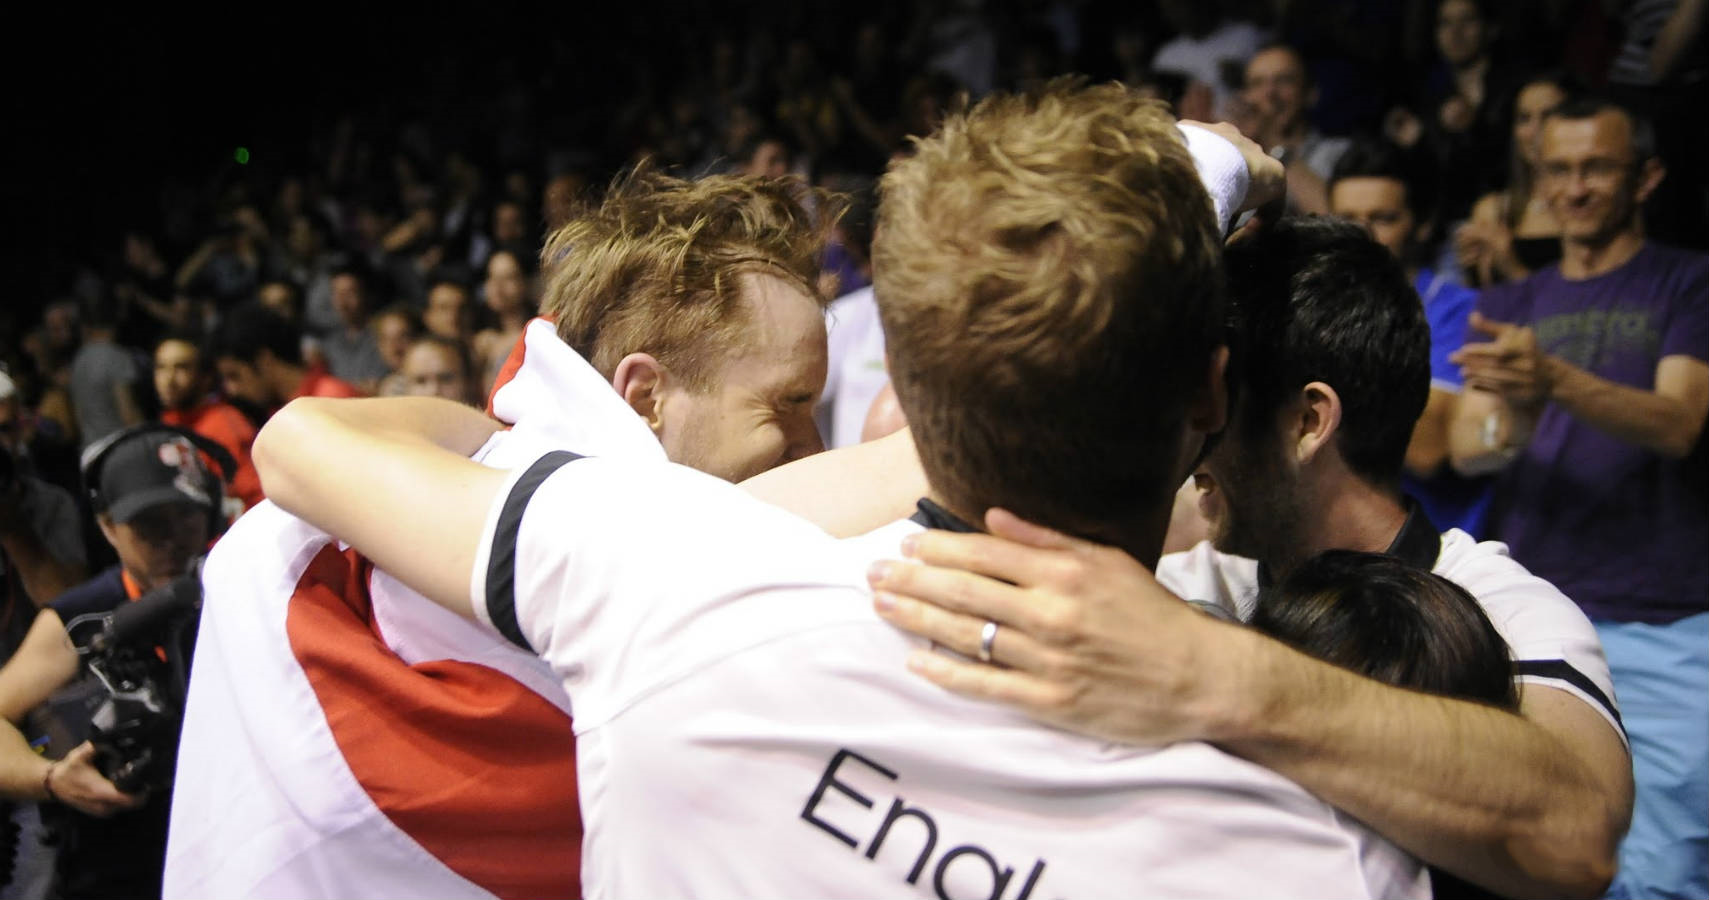 Team England Men